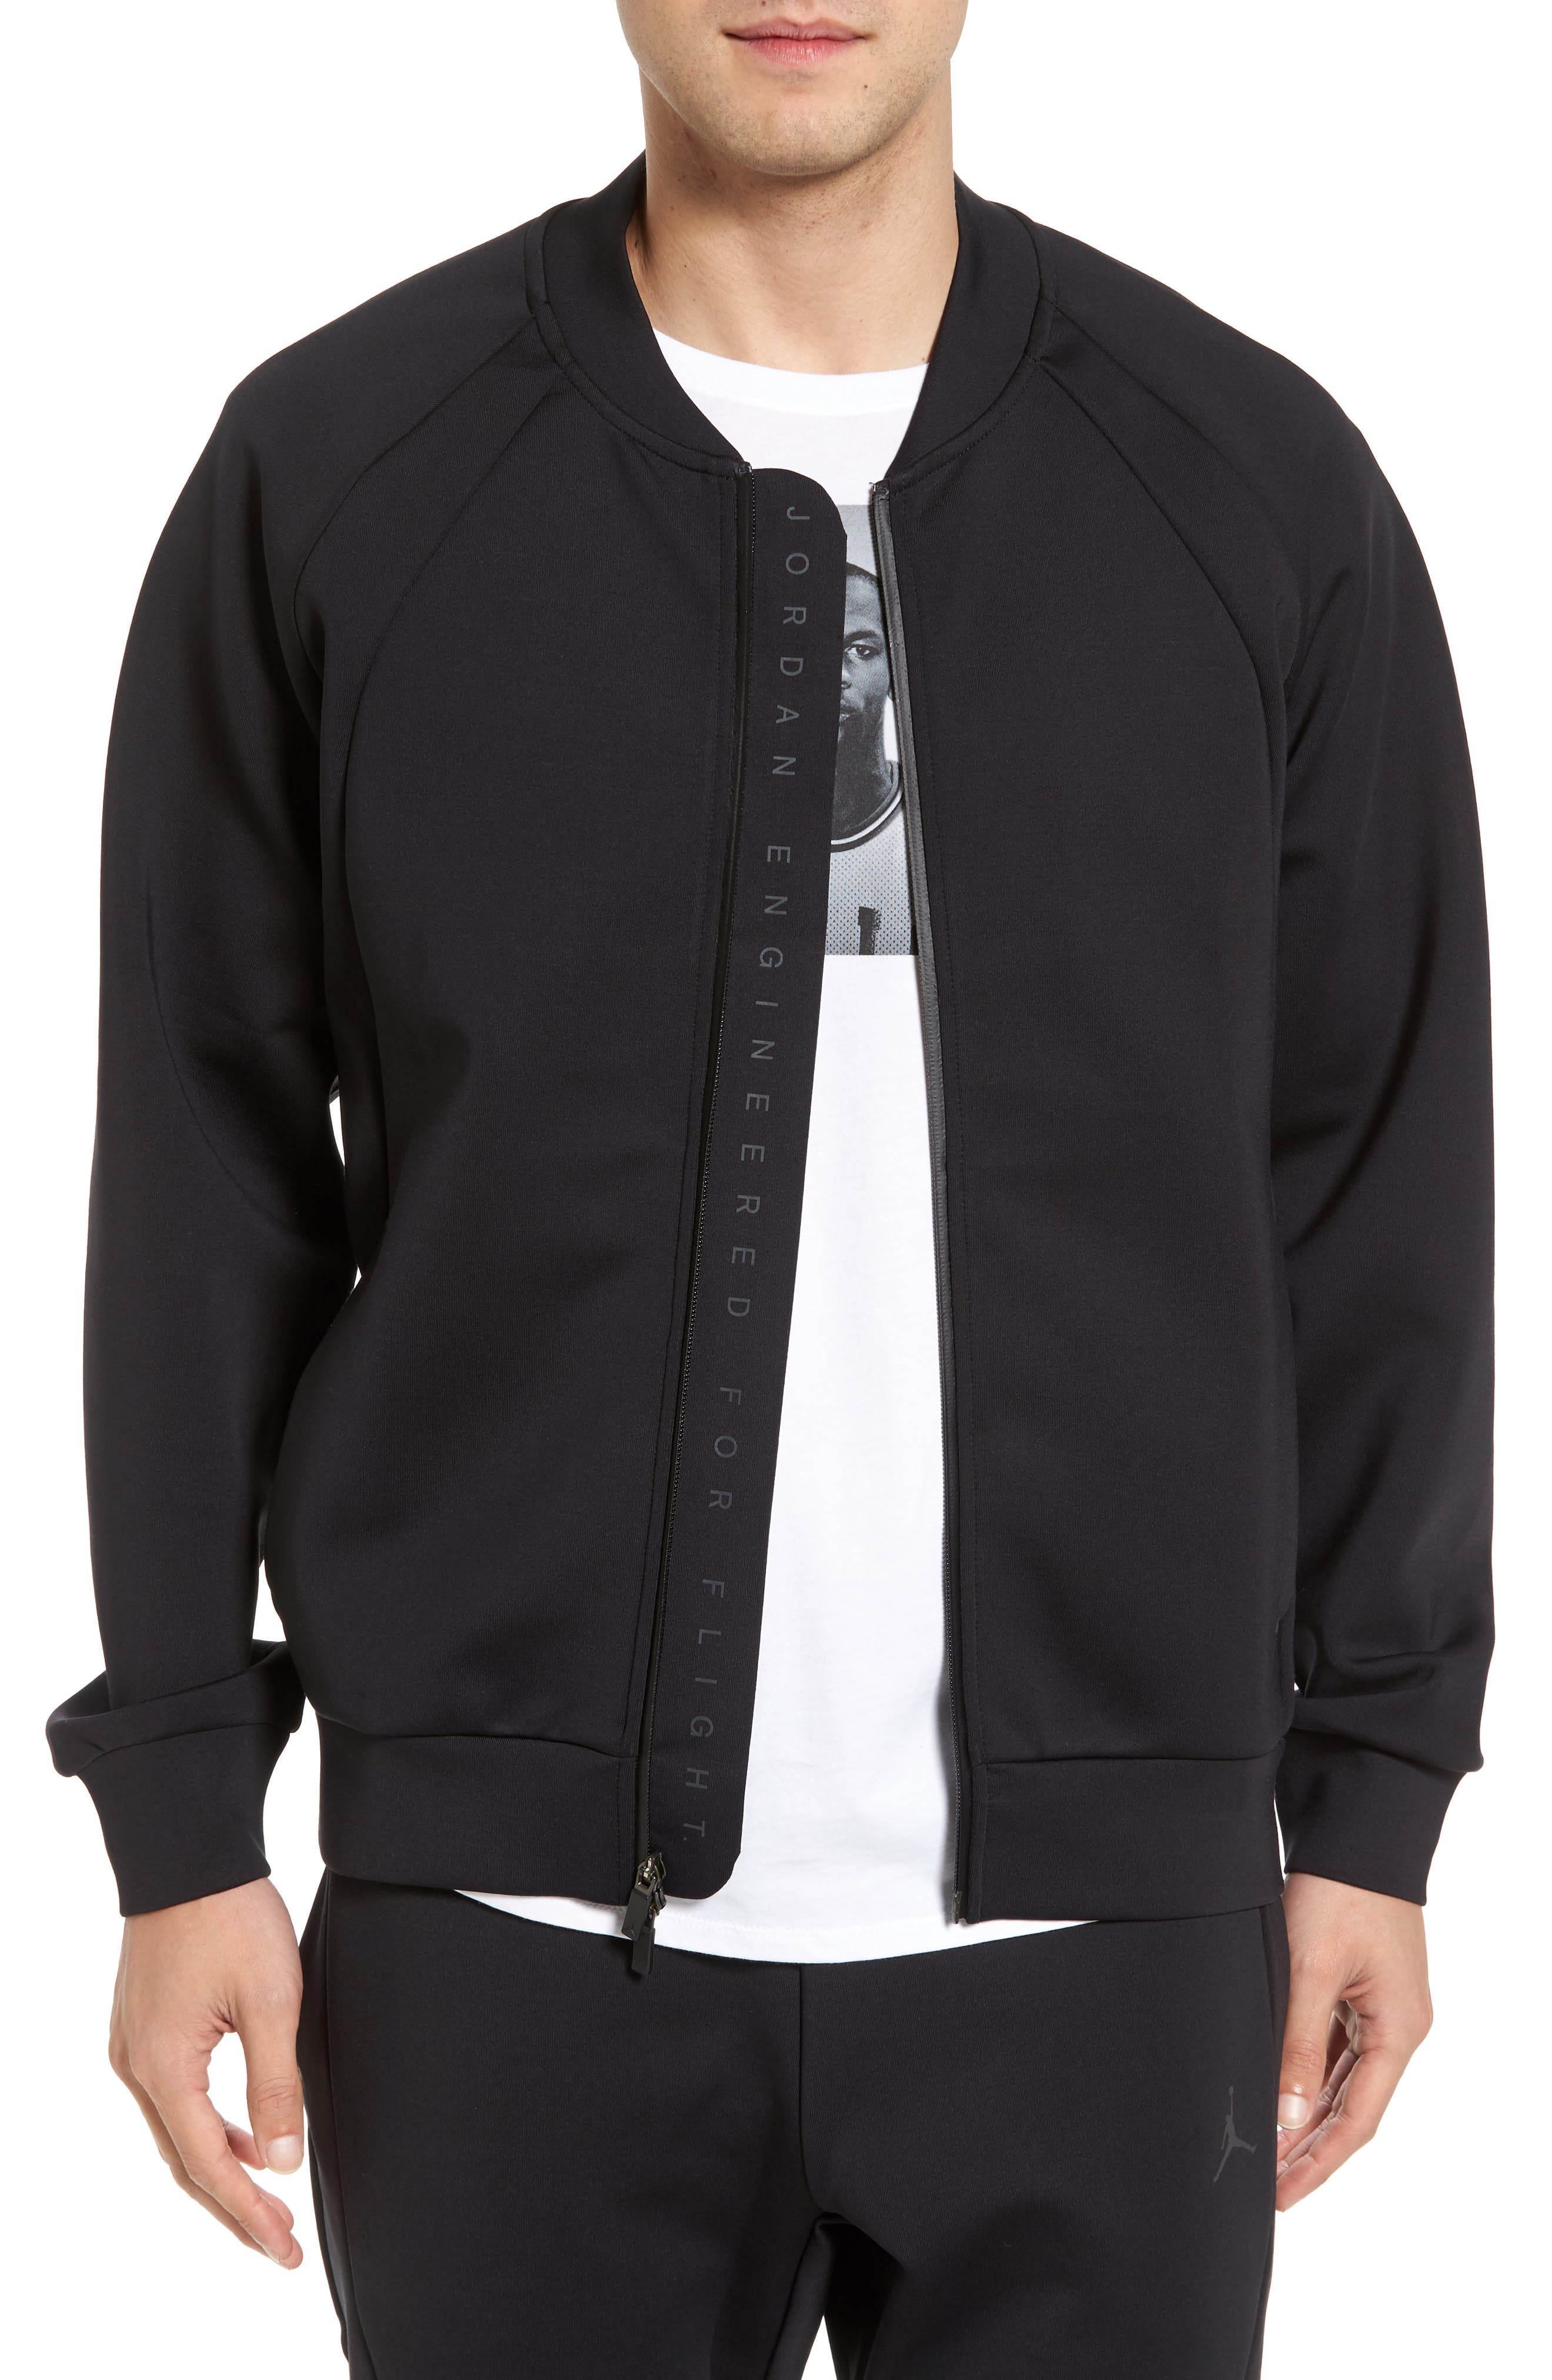 Nike Flight Tech Jacket